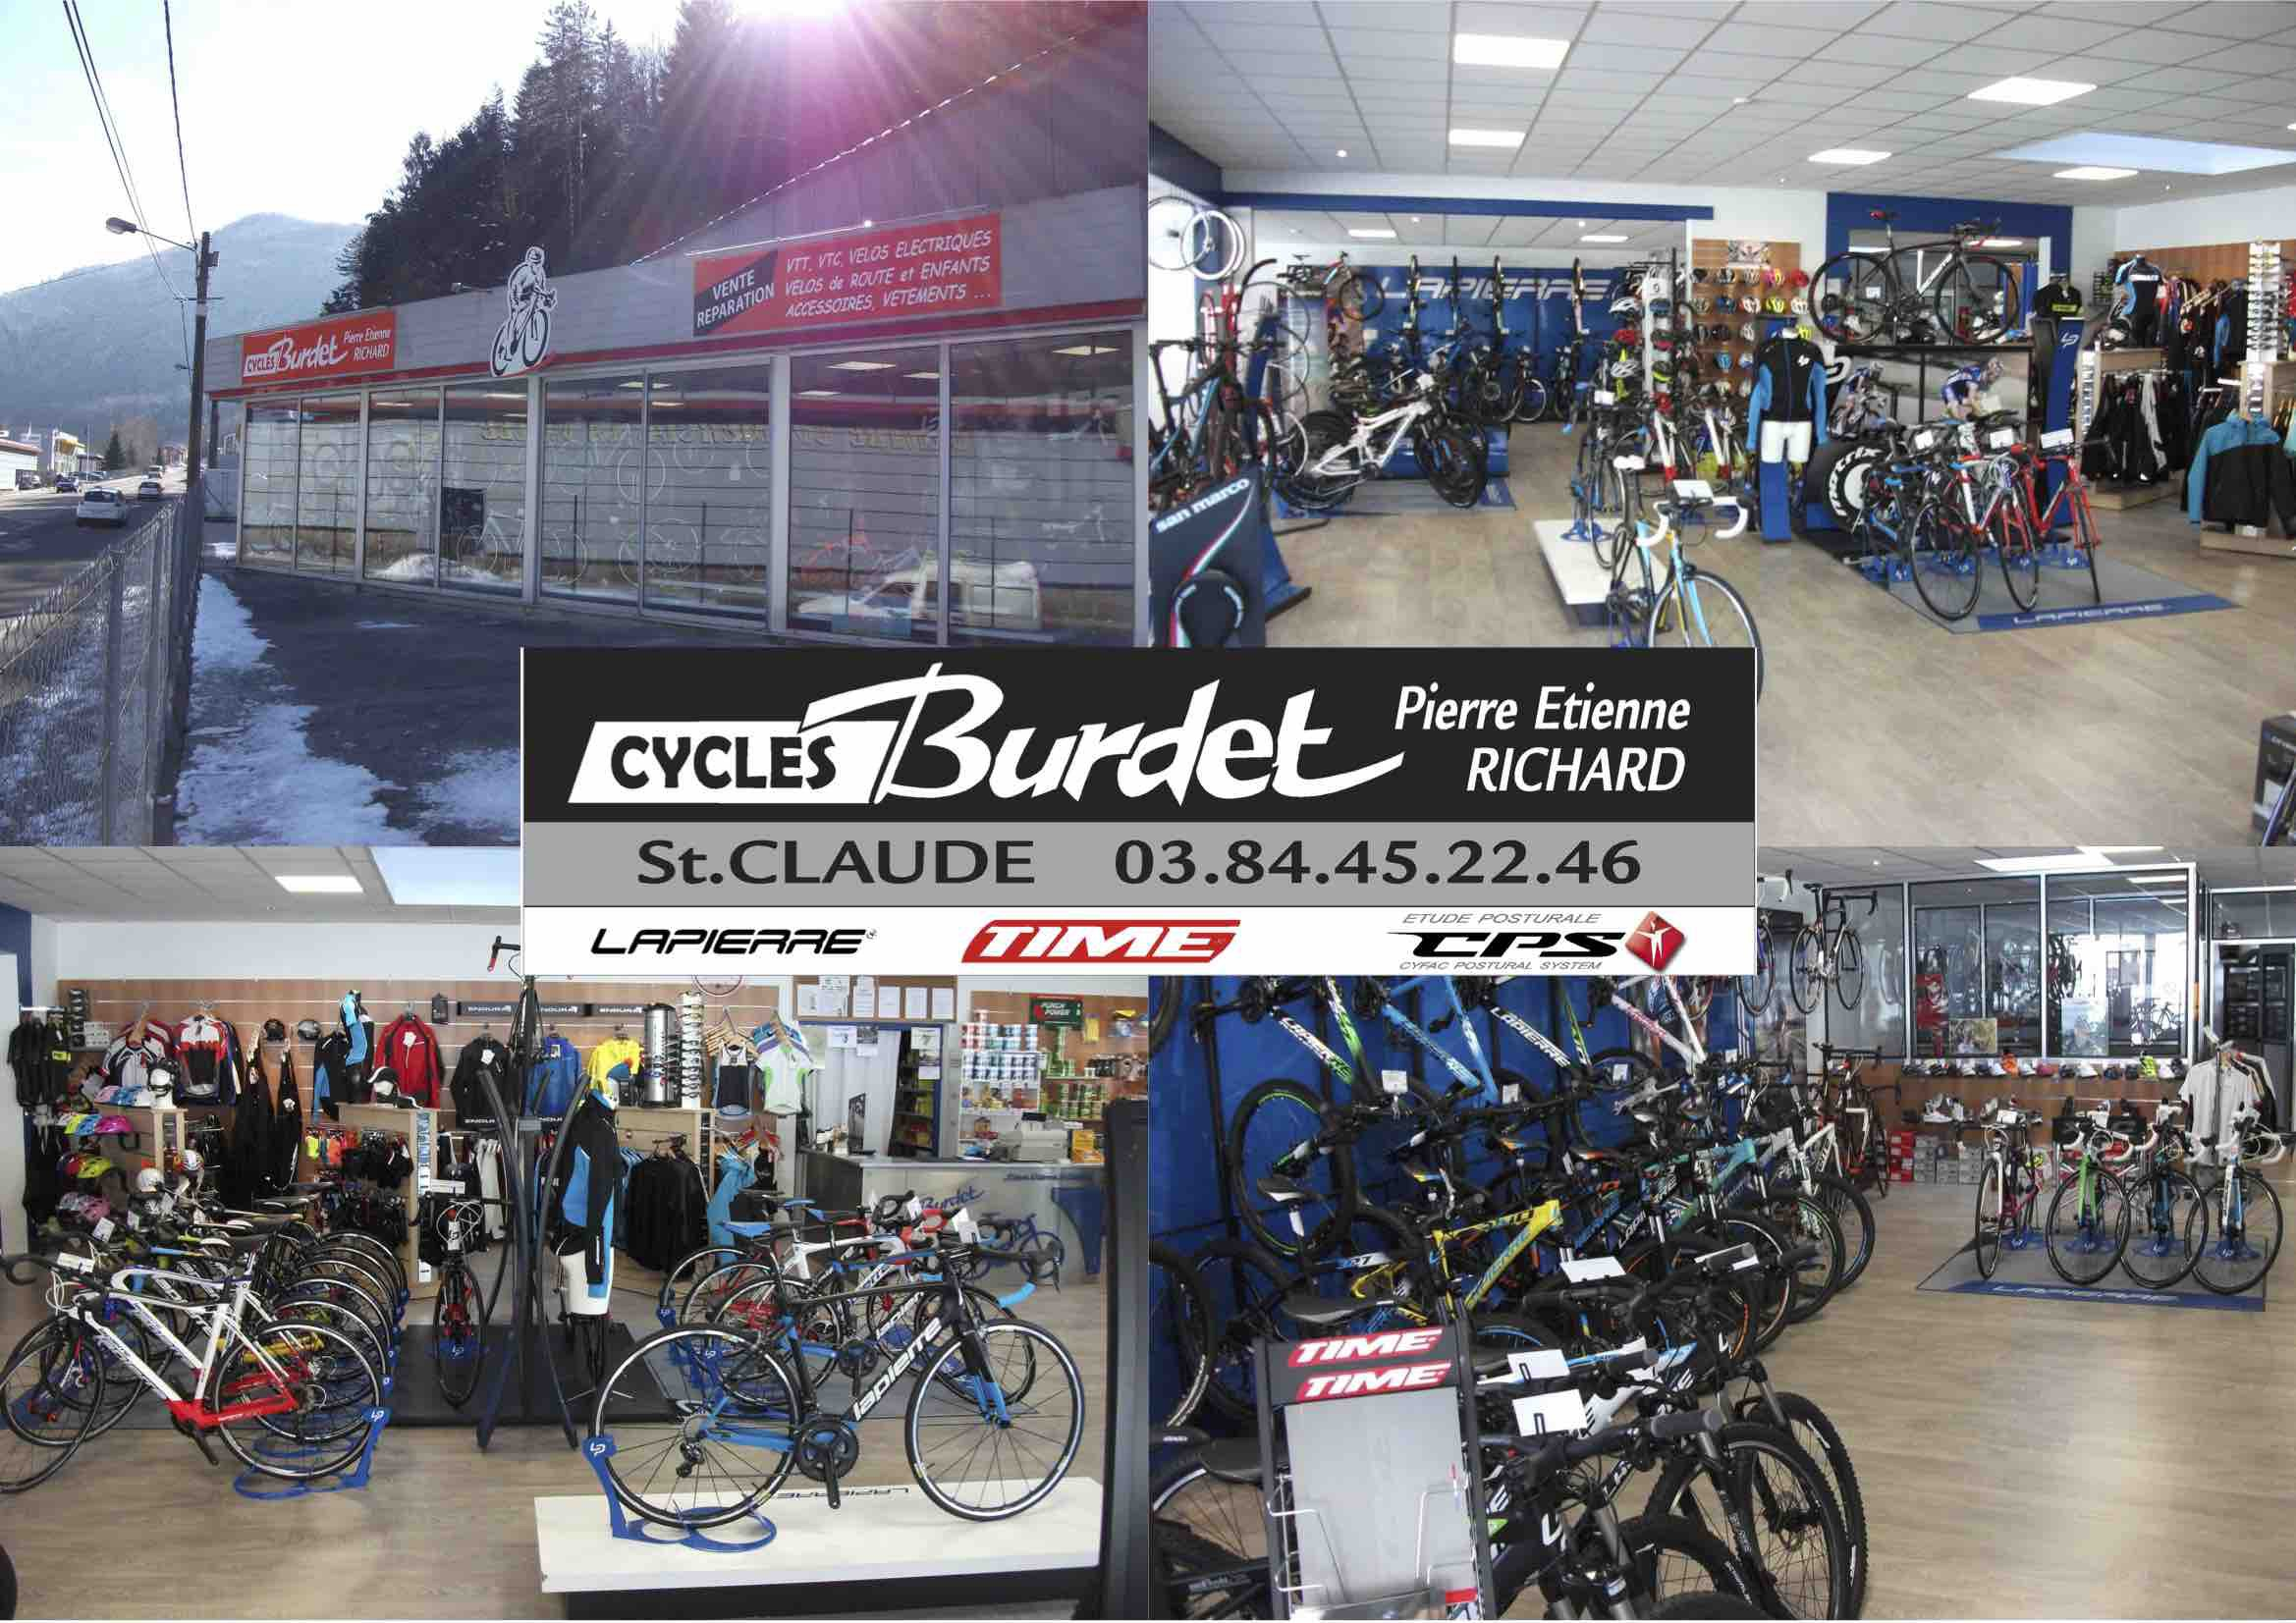 CYCLES BURDET